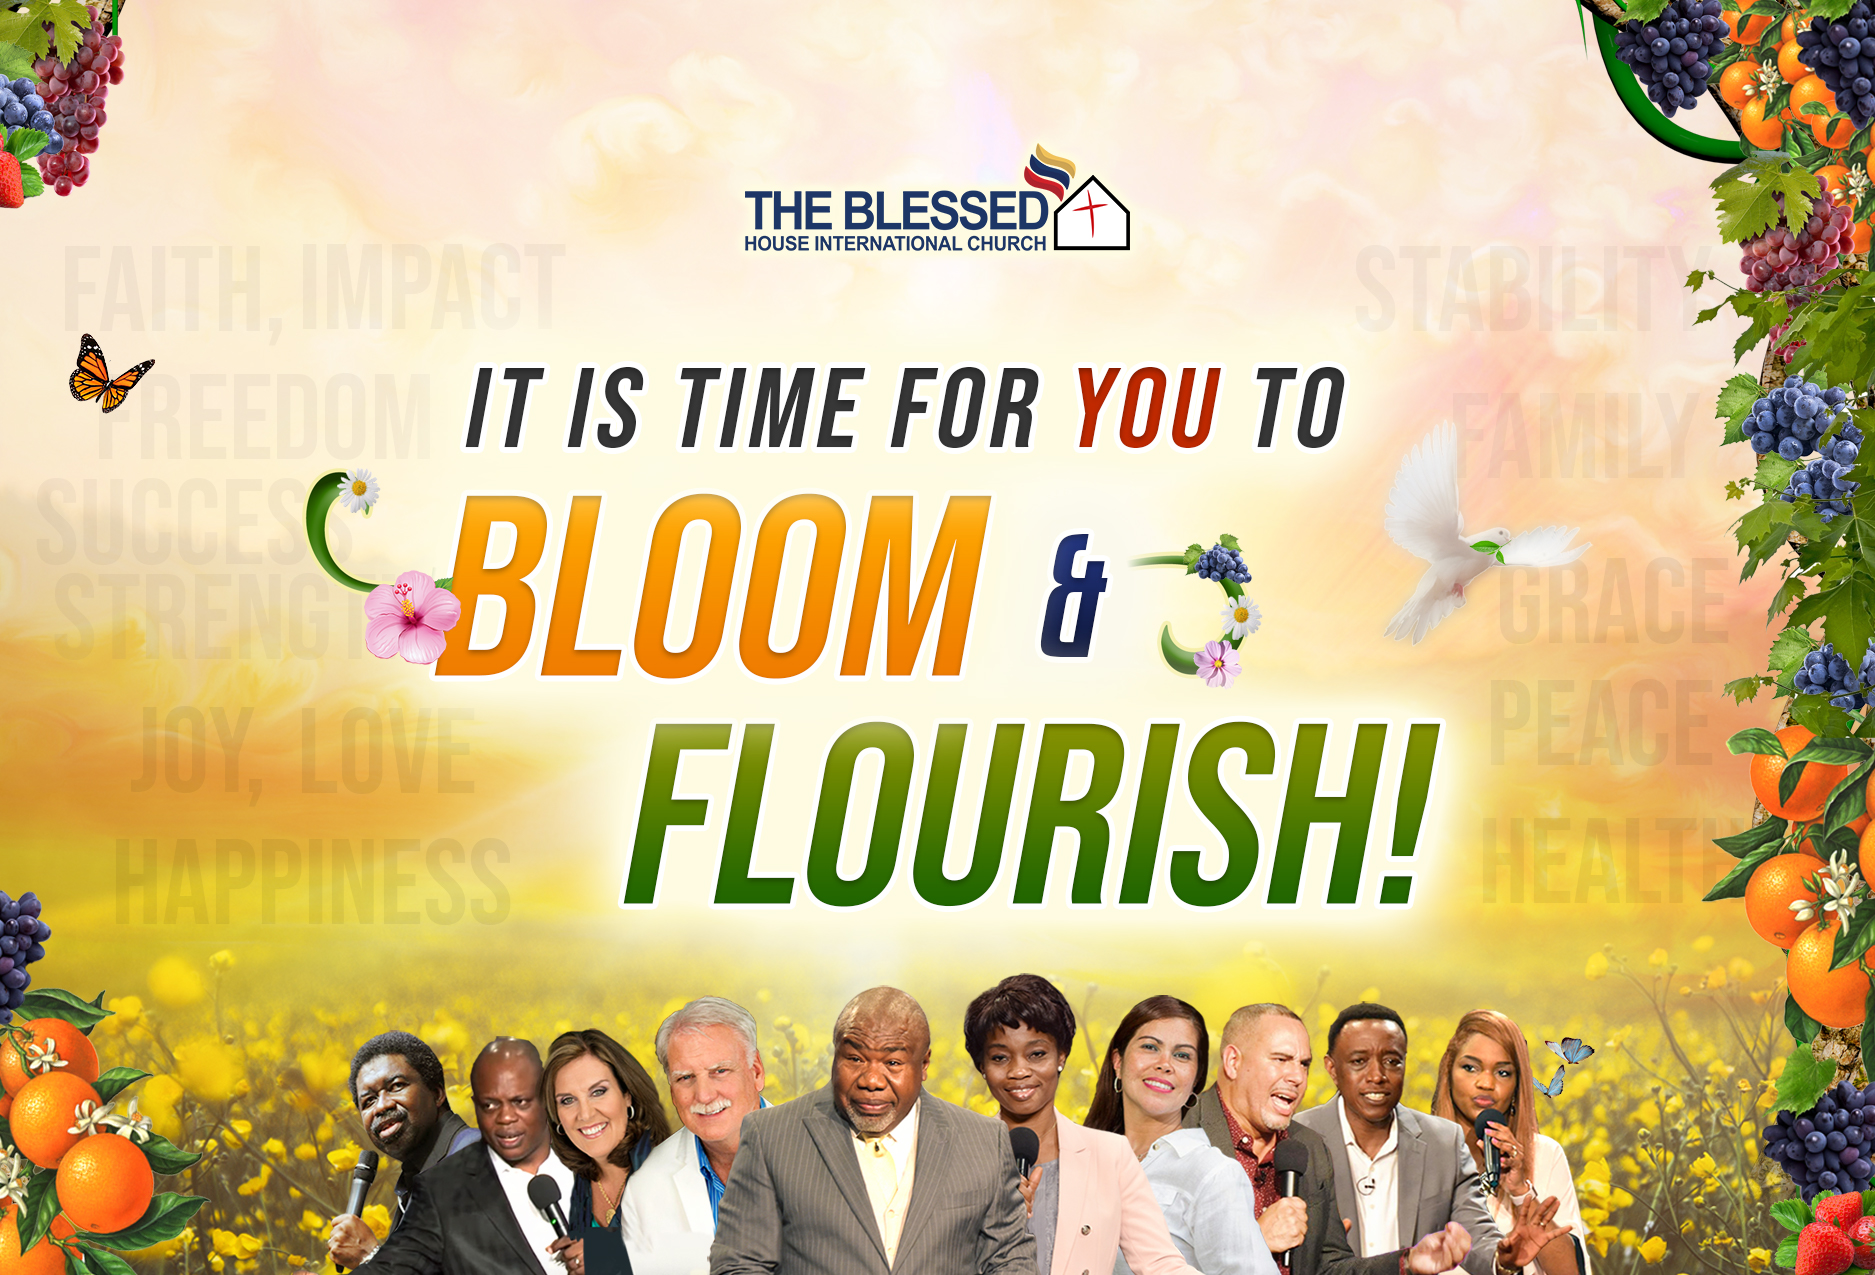 5th Annual Convention It's time to bloom